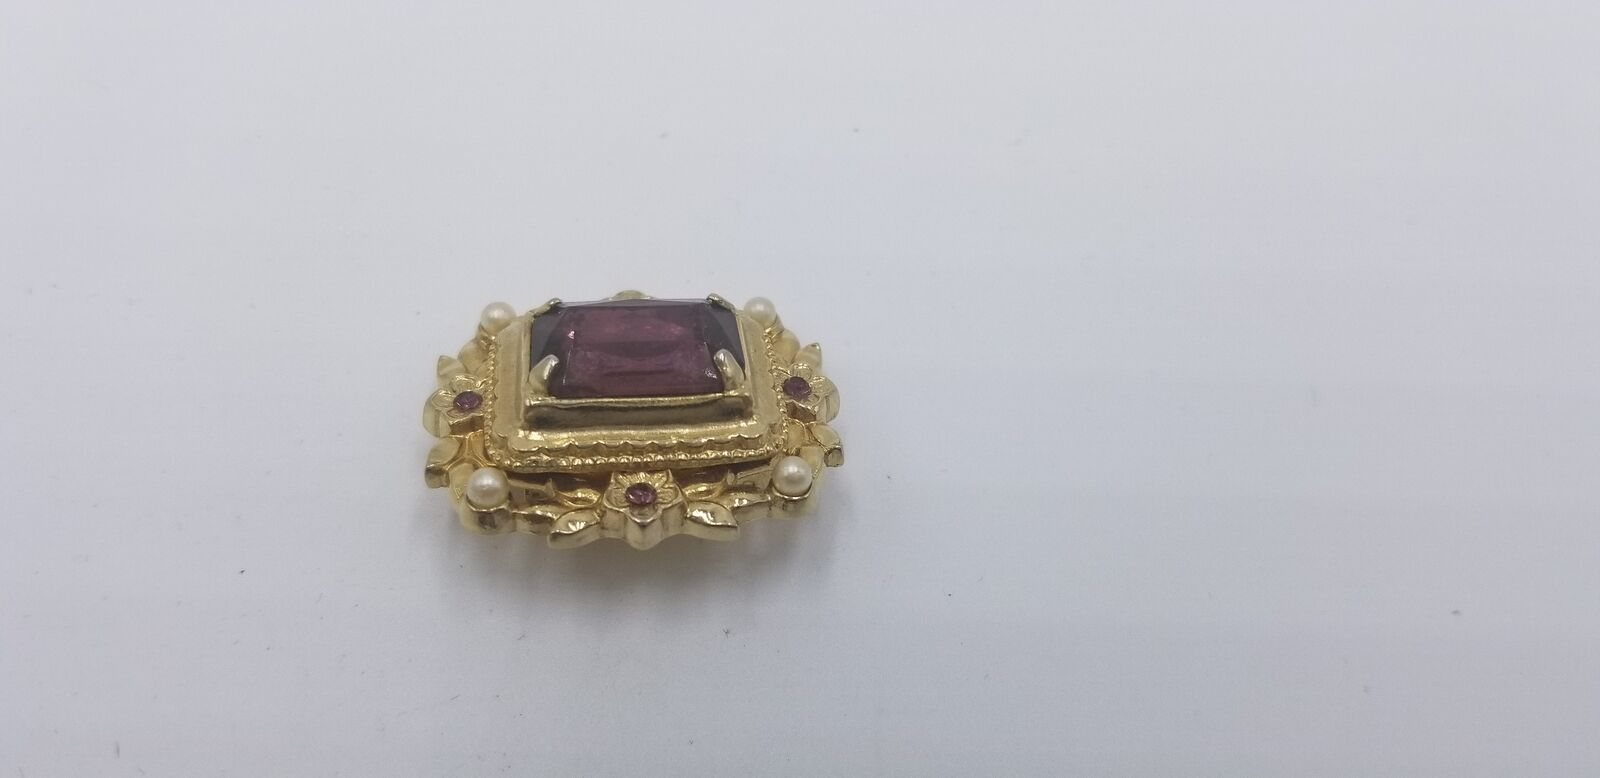 Vintage Signed Coro Gold Tone Pearl & Purple Stone Floral Pin / Brooch EUC image 3